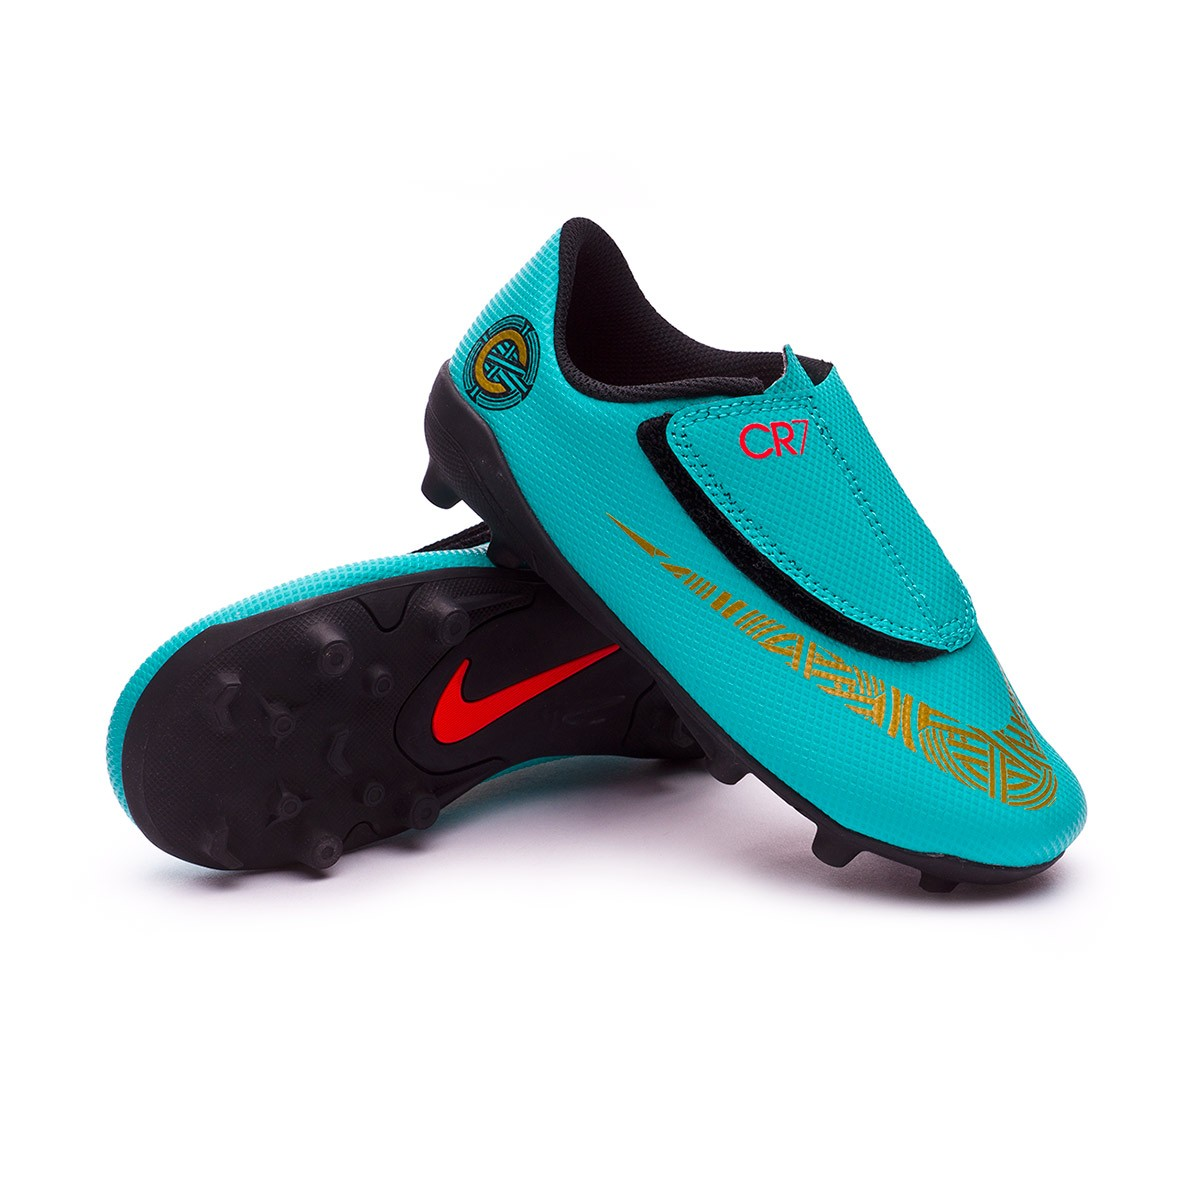 4bc3c353fcd8f ... best boot nike kids mercurial vapor xii club ps velcro cr7 mg clear  jade fd08a 7c5c8